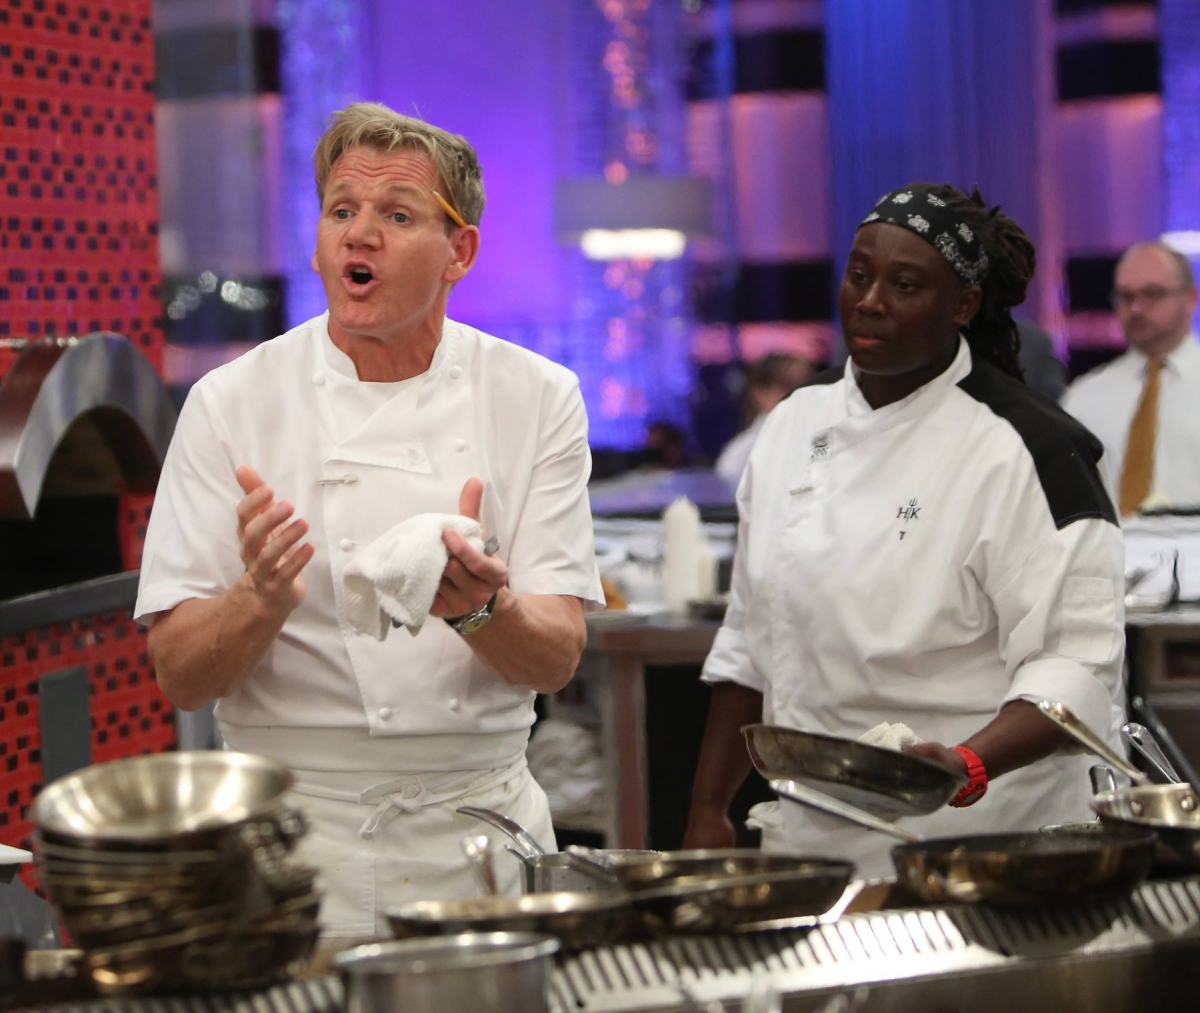 Watch Hells Kitchen: Watch Hell's Kitchen Season 15 Episode 1 Live Online: 18